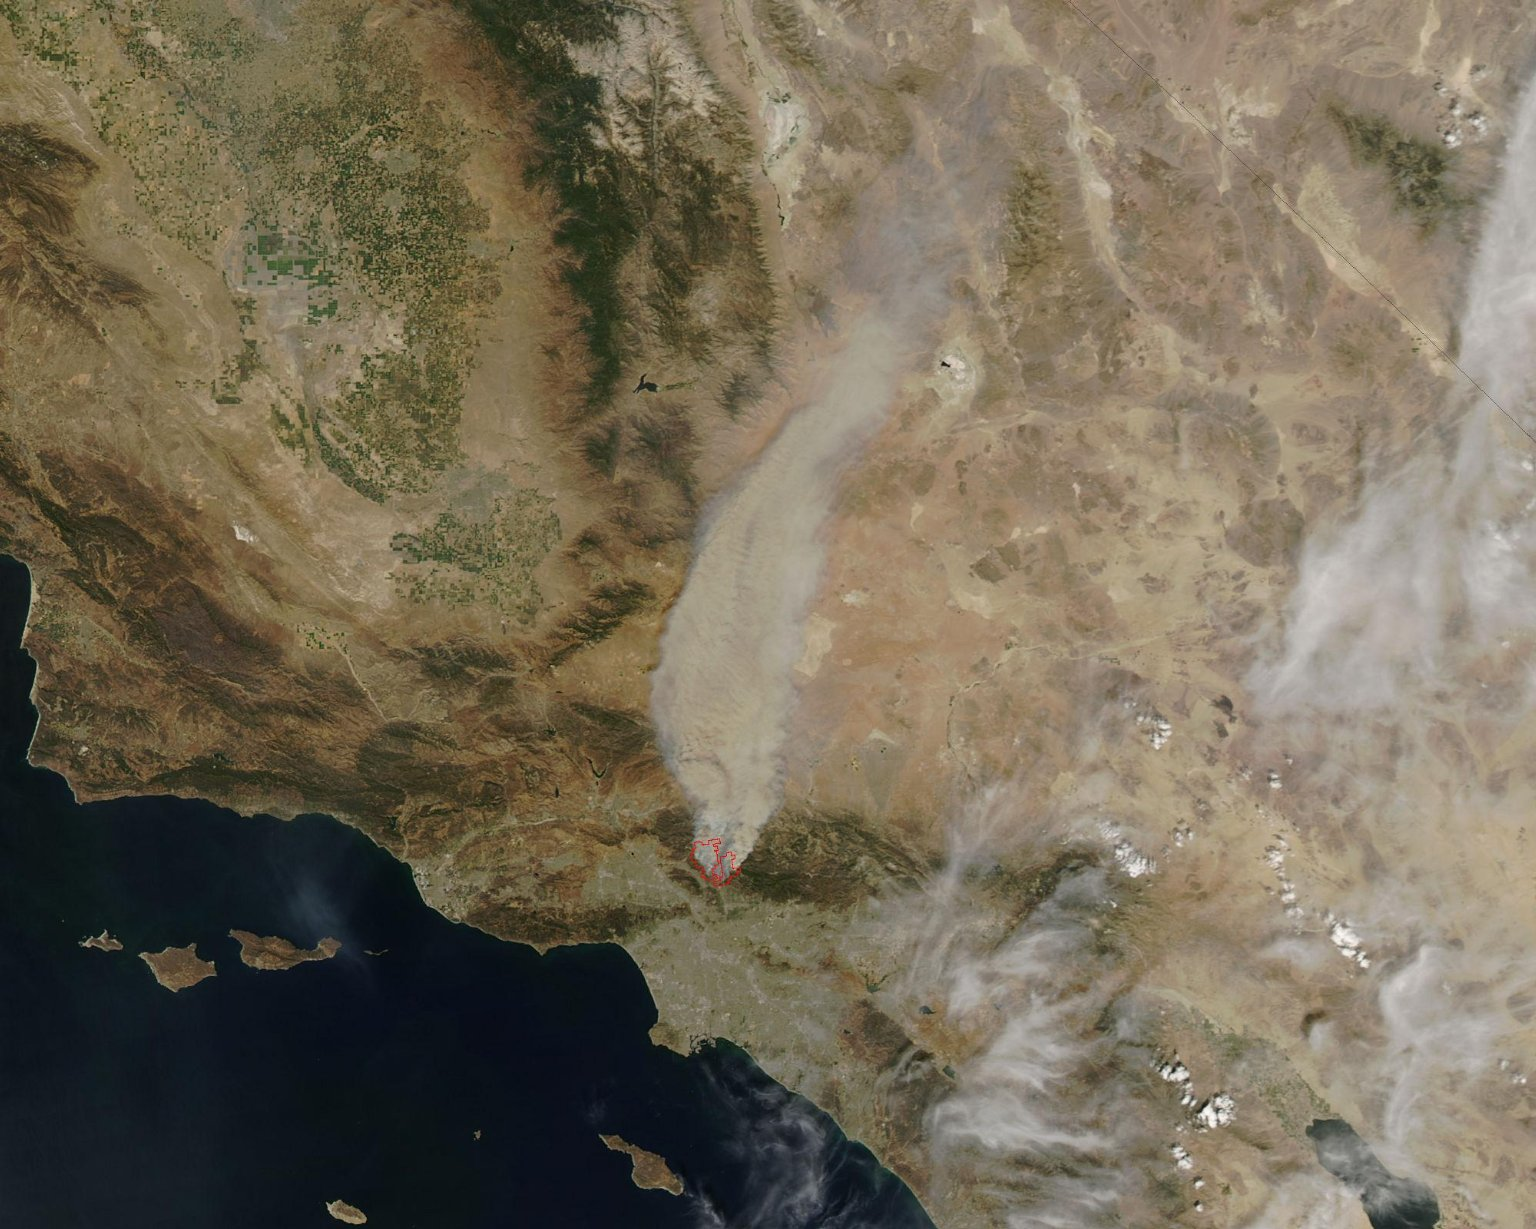 Fires in Los Angeles County 2